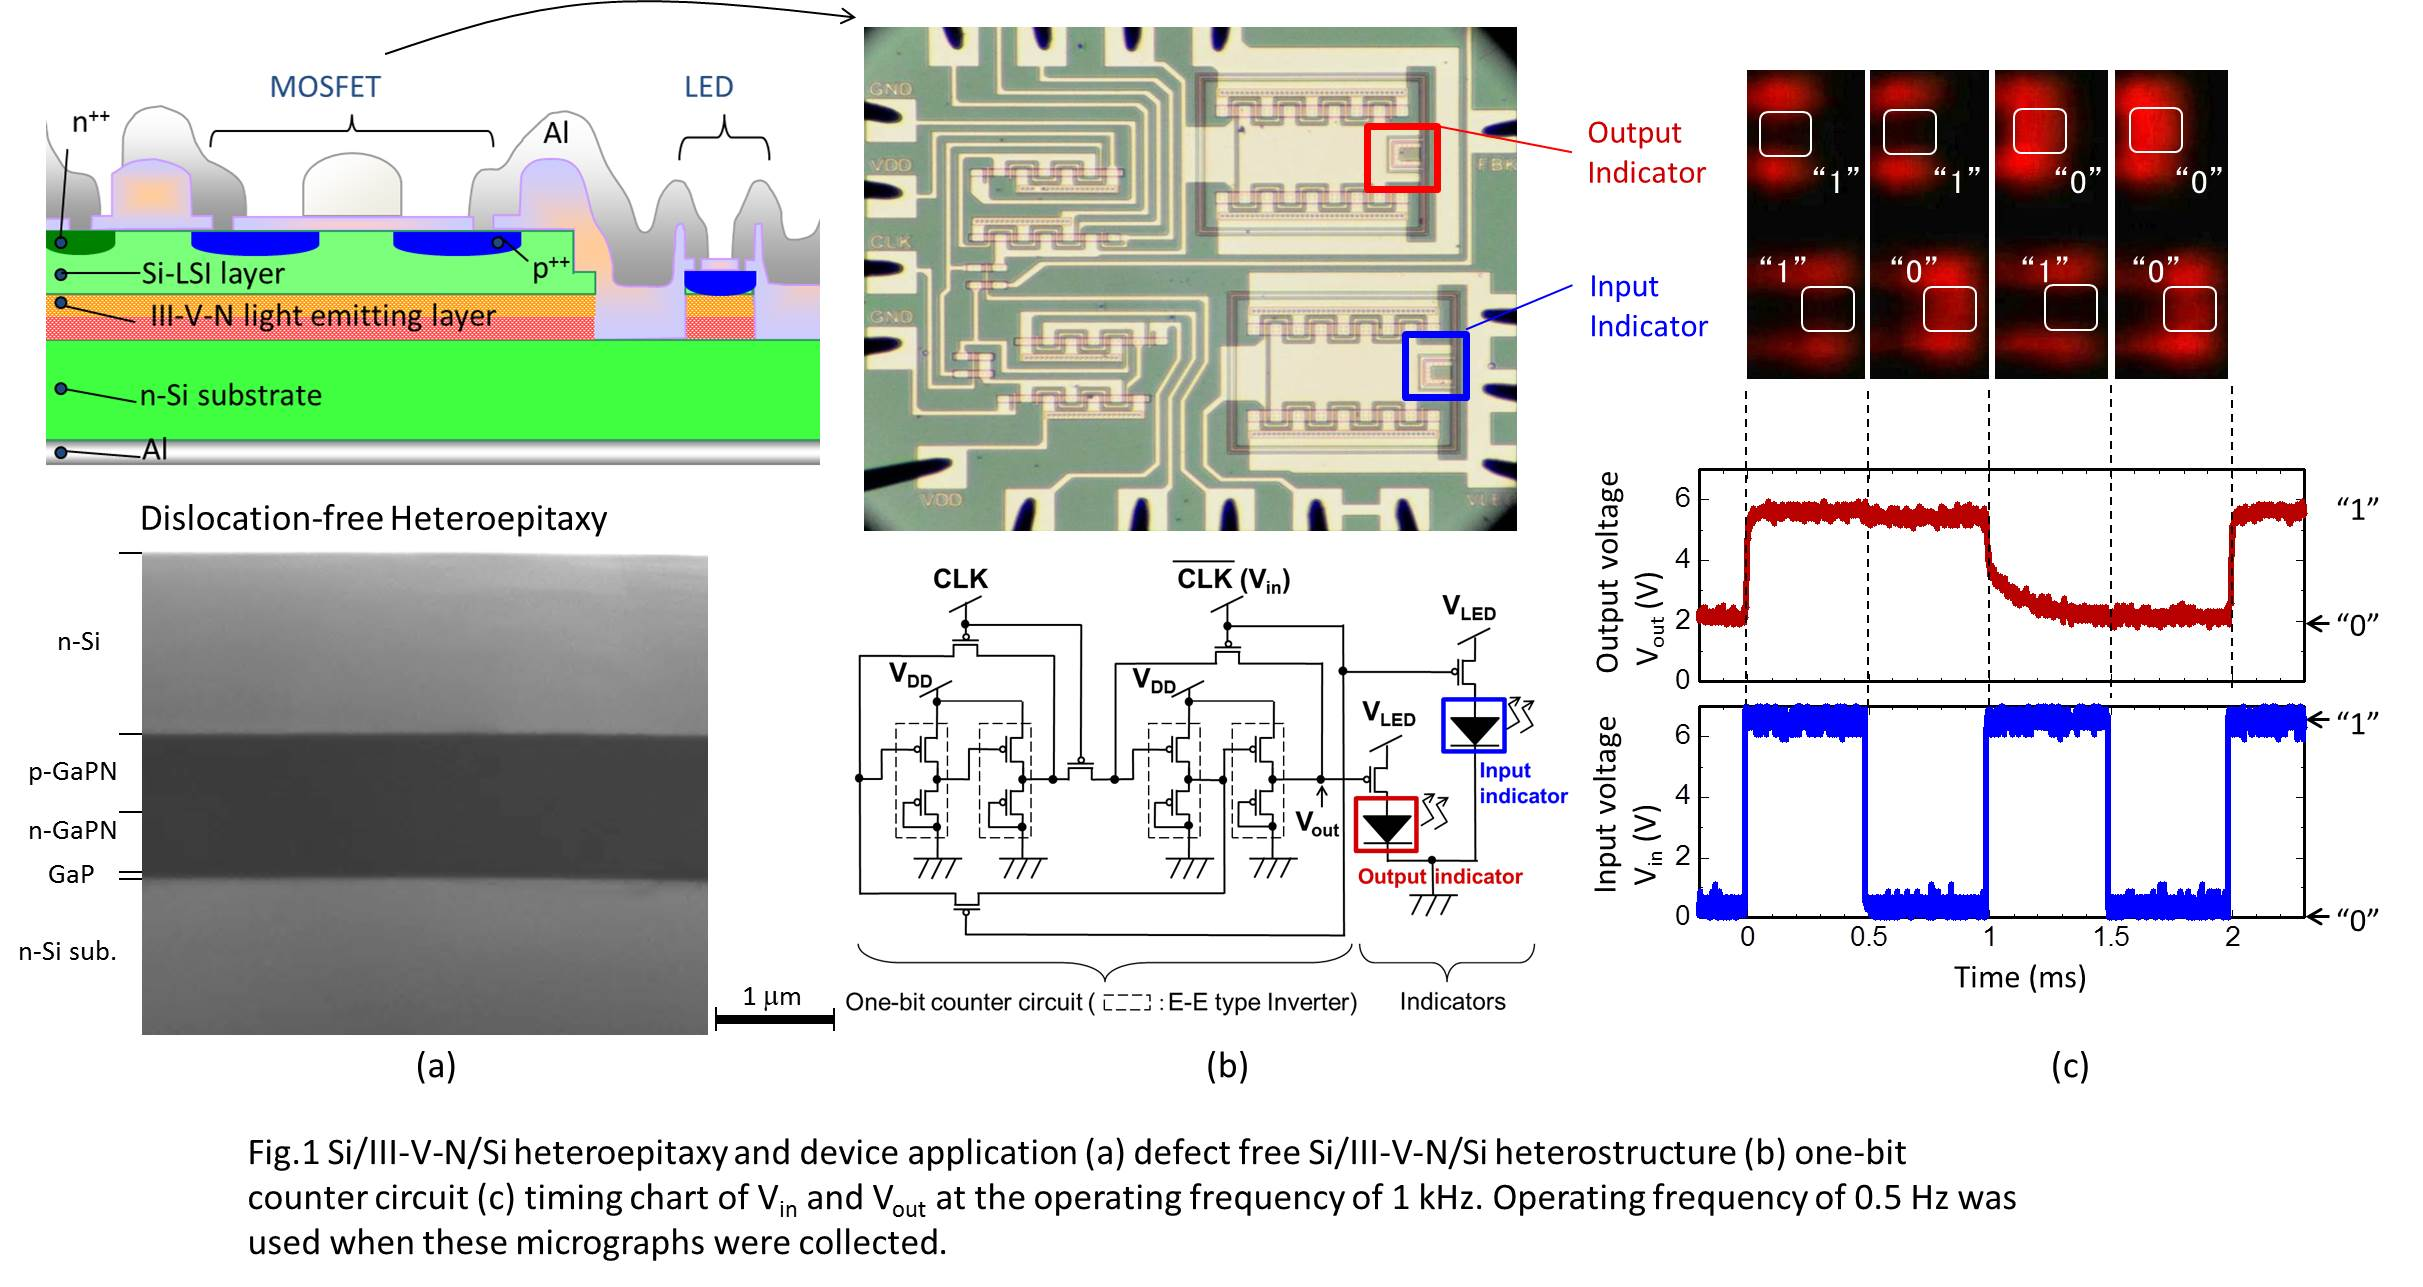 Keisuke Yamanetoyohashi University Of Technology Circuits In This Case Is The Inverter Crystal Drive Circuit Fig 1 Process Si Lsis And High Efficiency Reliability Light Emitting Devices Figure Shows A Prototype Opto Electronic Integrated